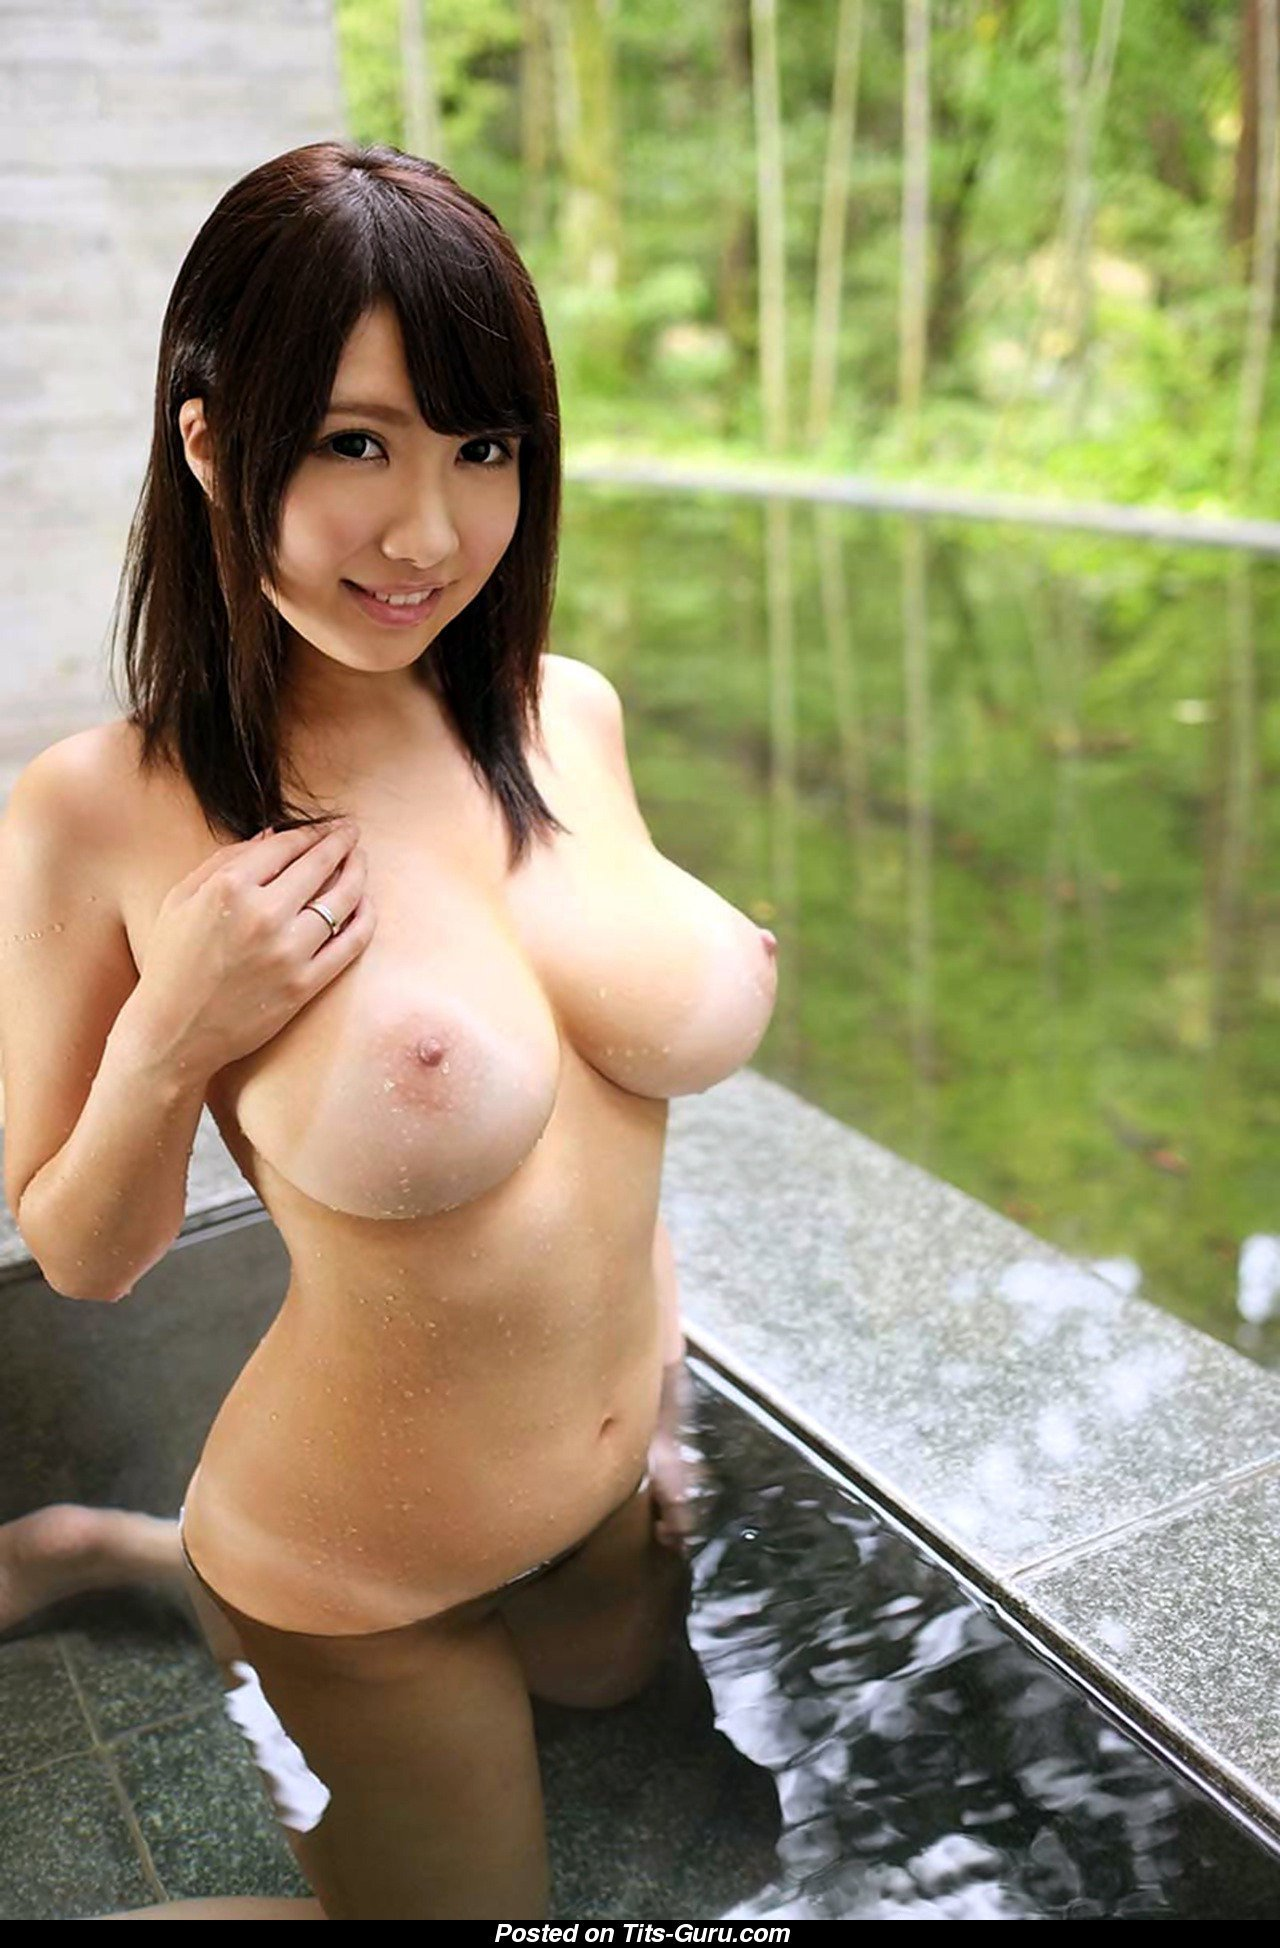 Hot Asian Girls With Big Tits